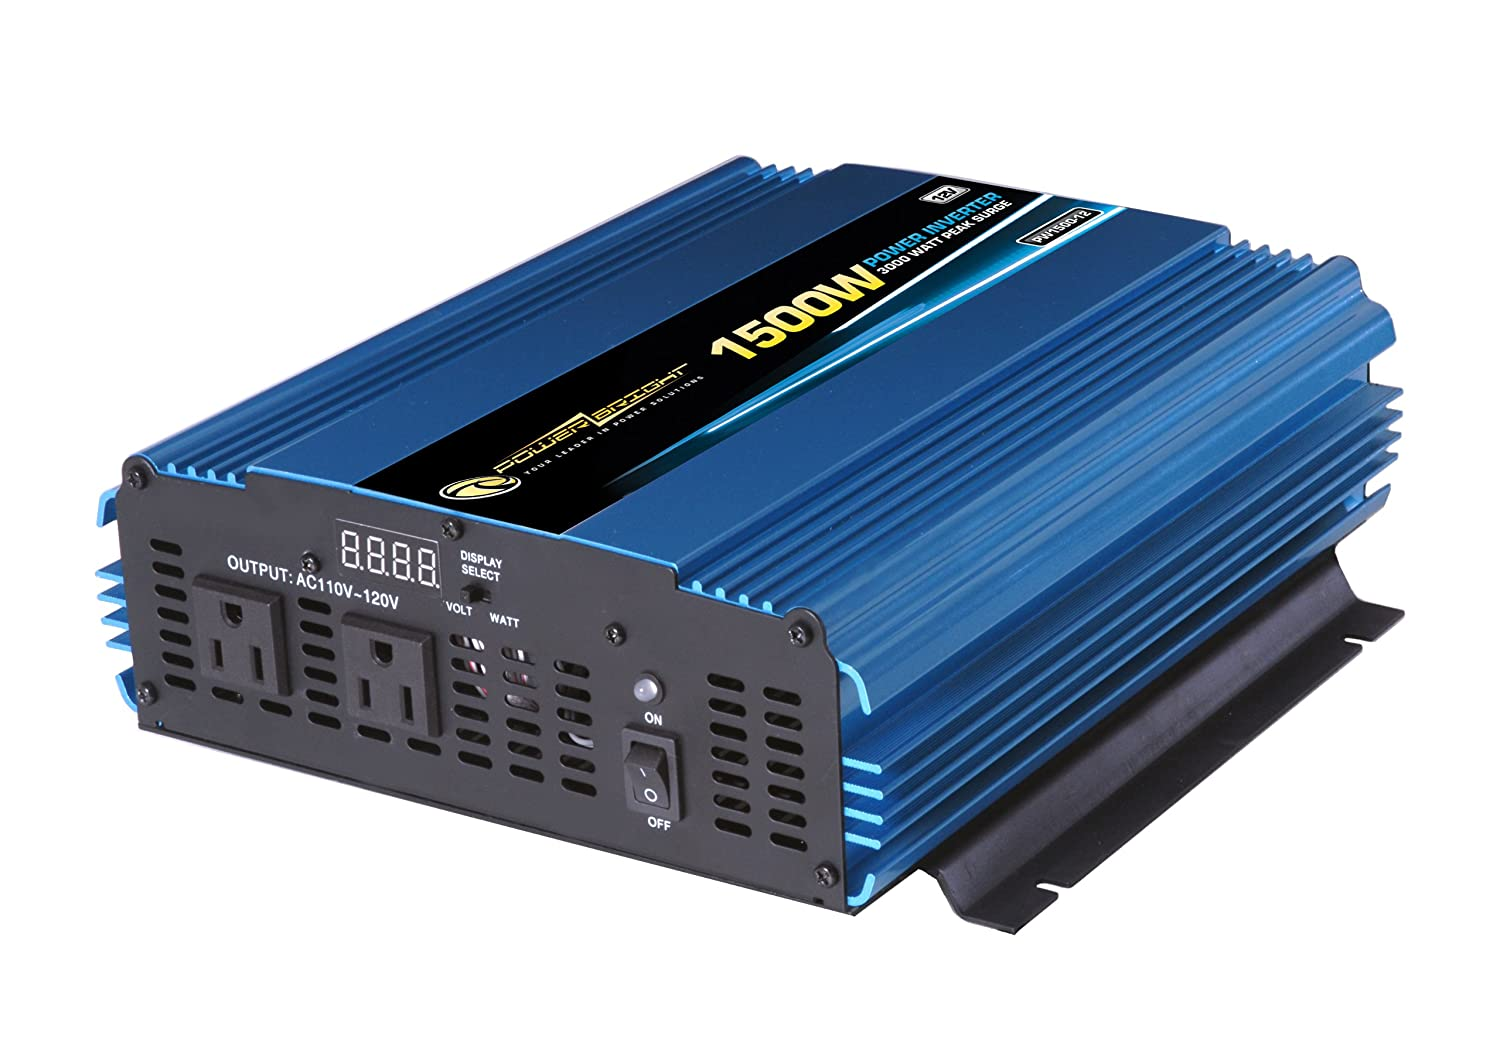 Power Bright Technologies PWTPW1500-12 12 Volt 1500 Watt Power Inverter B000OP2Q8A